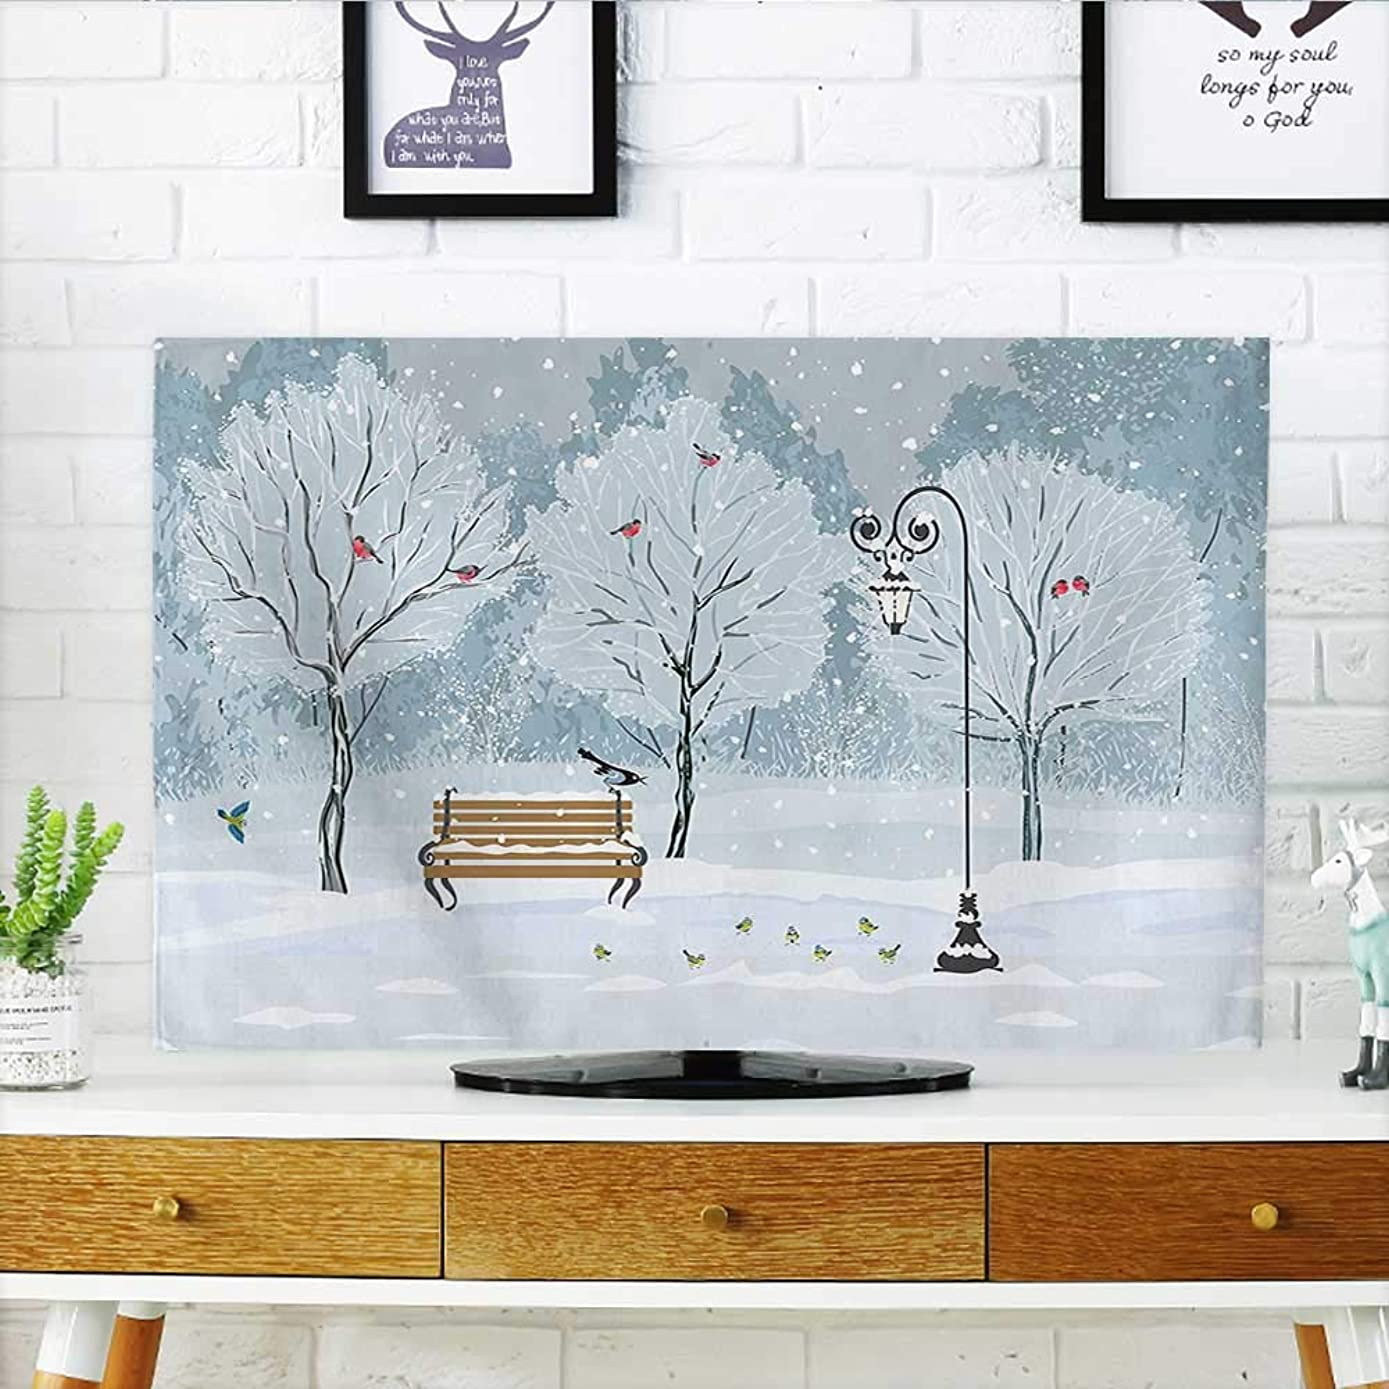 Auraisehome Cord Cover for Wall Mounted tv Decor Snow Falling in The Park on a Cold Winter Day Birds Lanterns Cover Mounted tv W20 x H40 INCH/TV 40